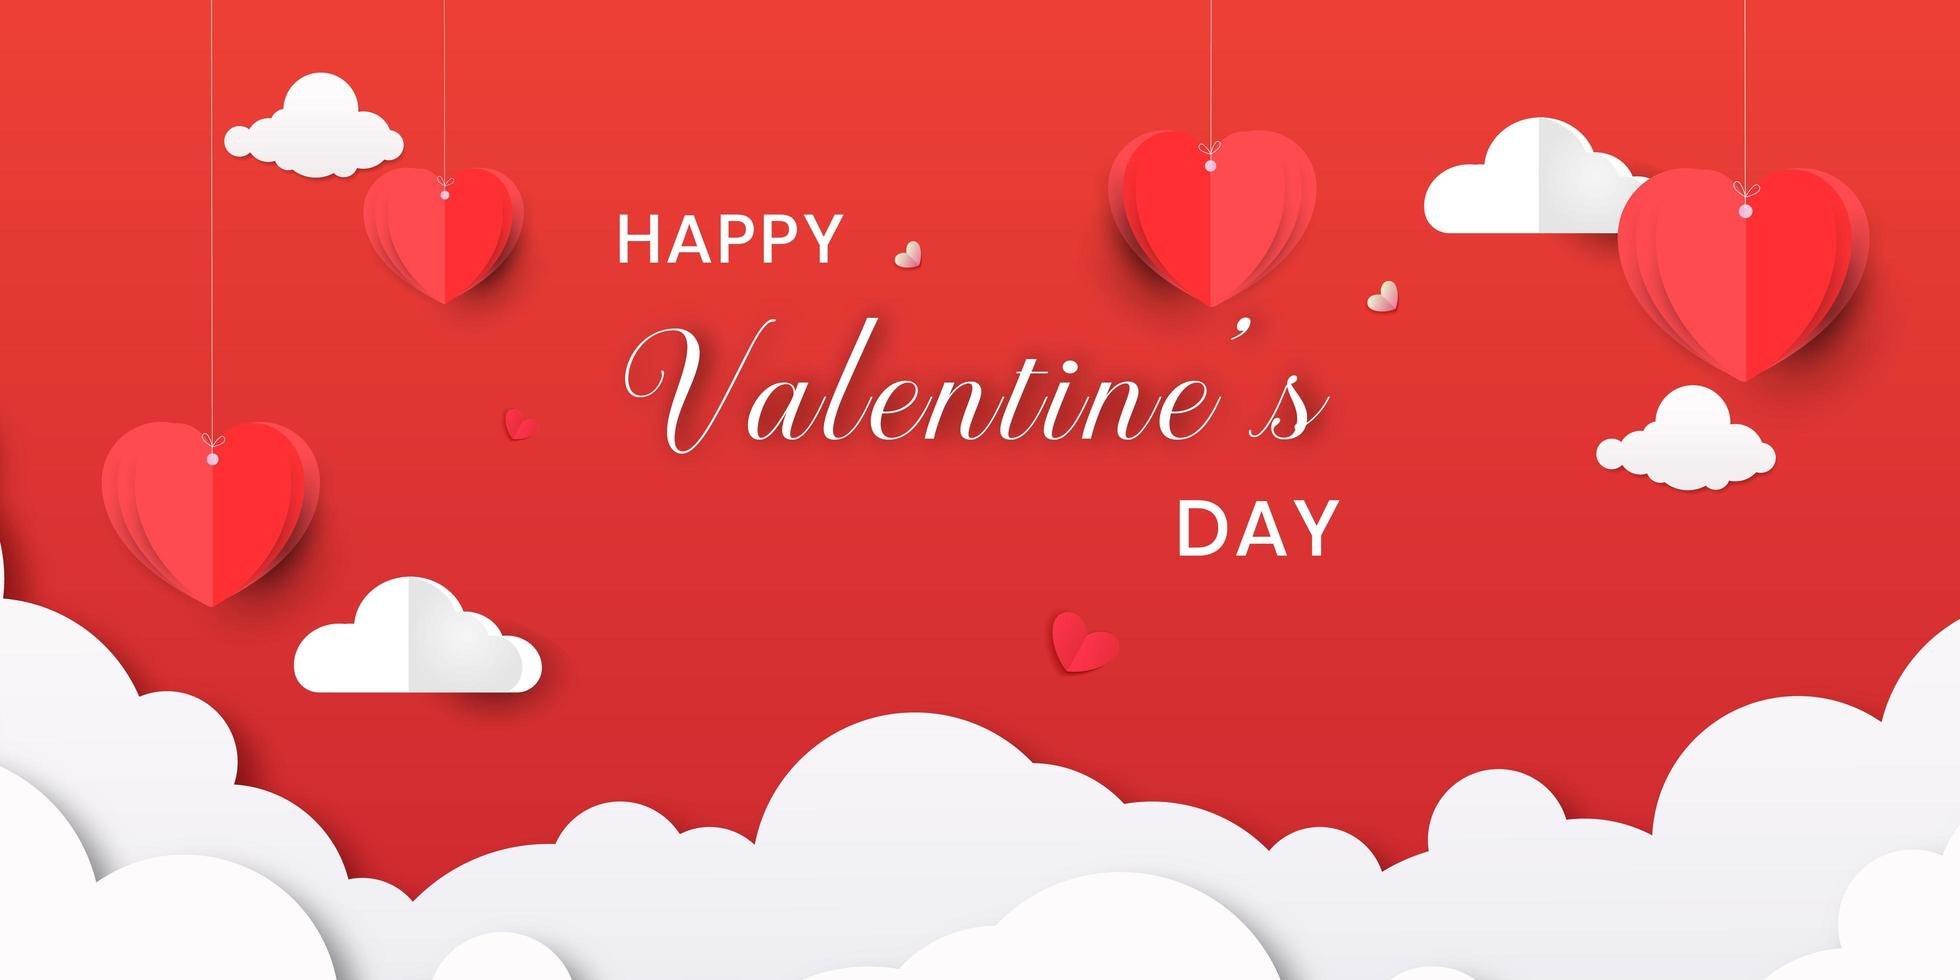 Valentine S Day Banner With Origami Hearts And Clouds Download Free Vectors Clipart Graphics Vector Art Choose any clipart that best suits your projects, presentations or other. https www vecteezy com vector art 695938 valentine s day banner with origami hearts and clouds